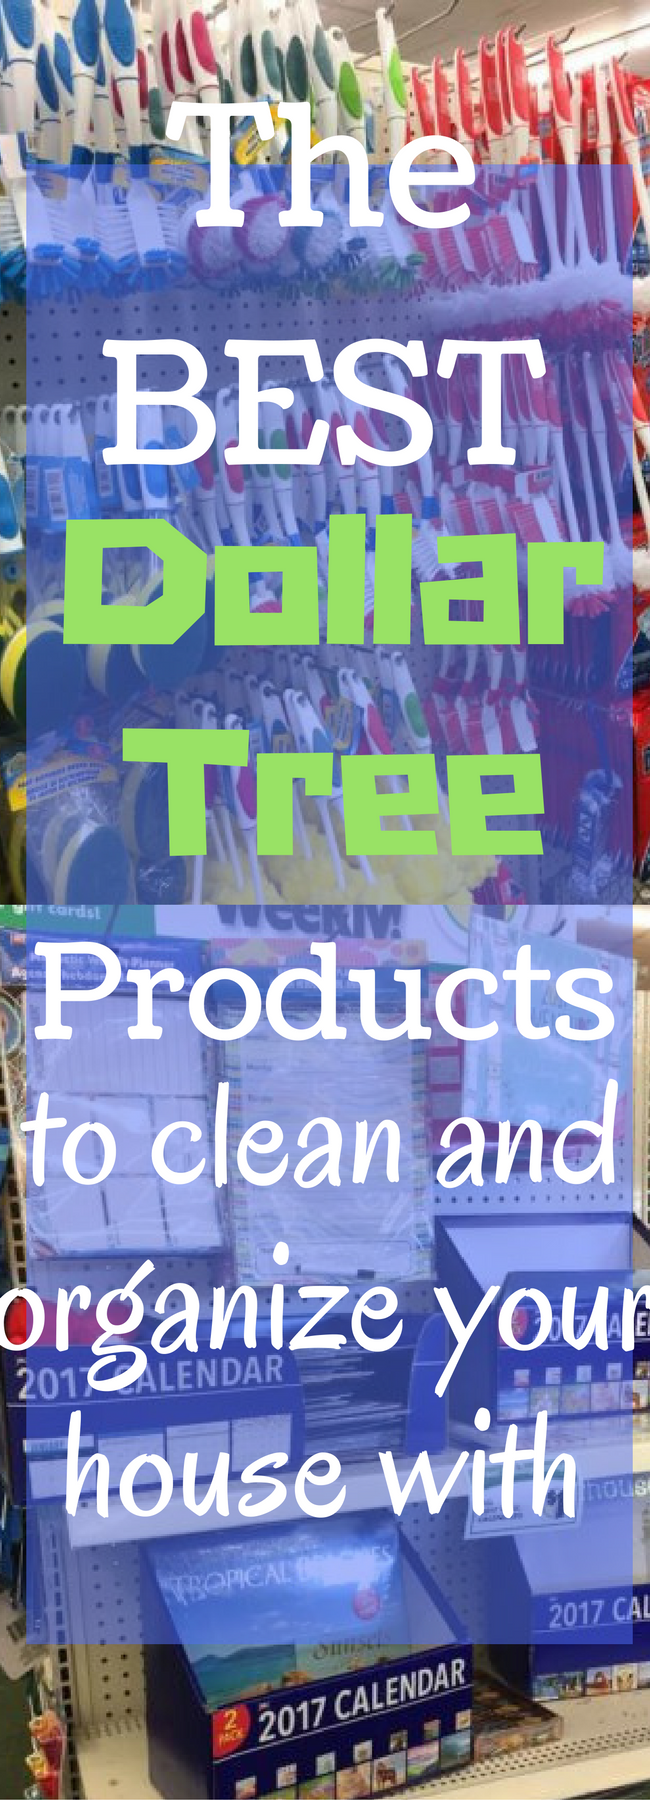 https://www.clarkscondensed.com/thrifty-living/best-dollar-tree-cleaning-organization-supplies/